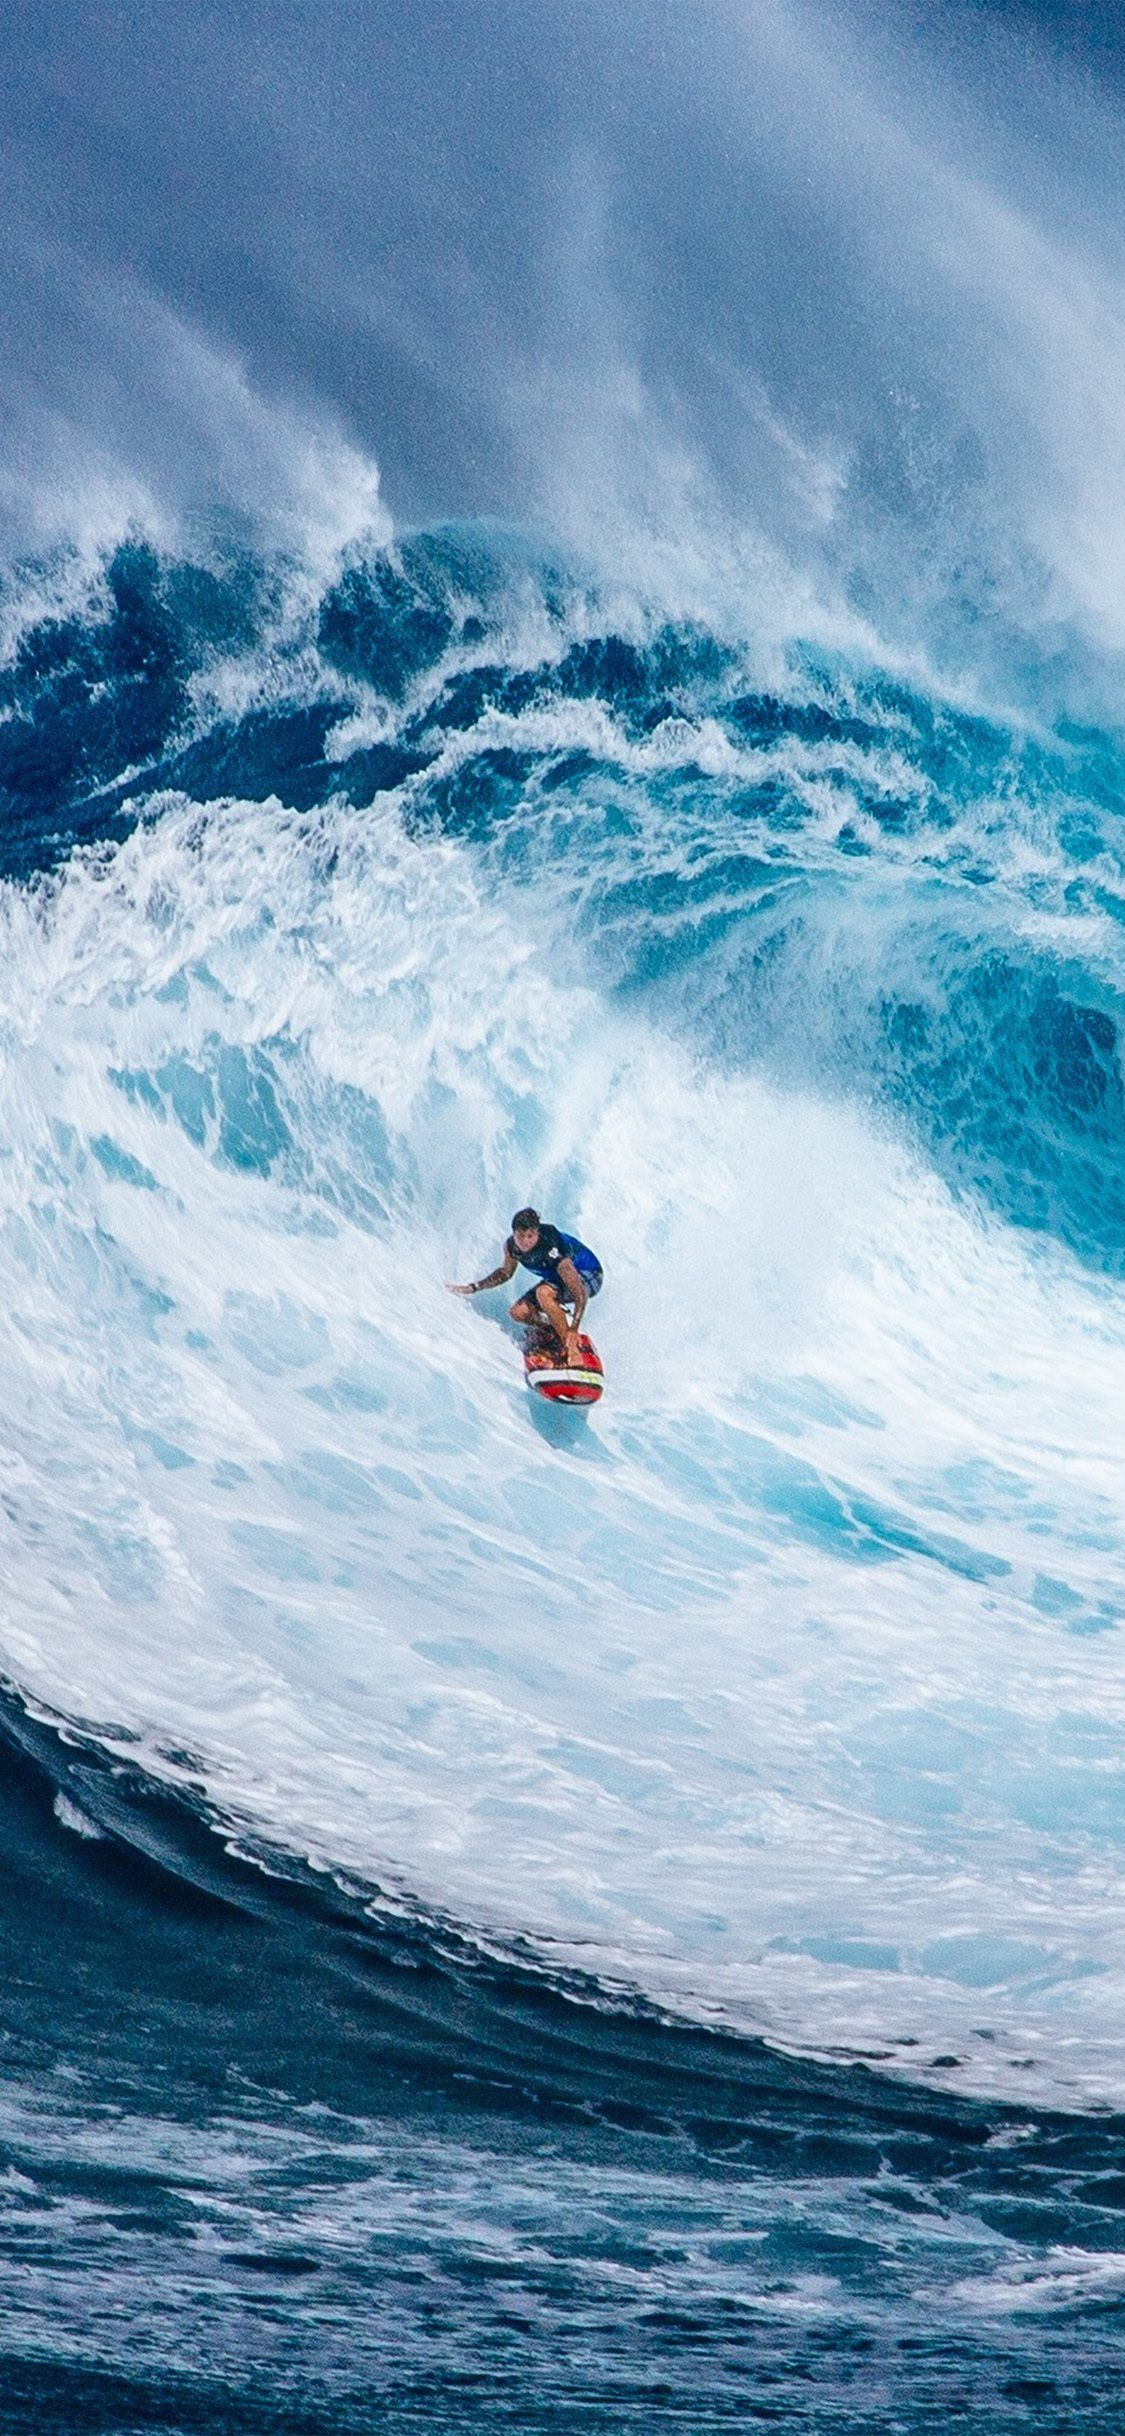 Pin By Lindsay Clifford On Surfing Beach Photos In 2020 Surfing Waves Surfing Waves